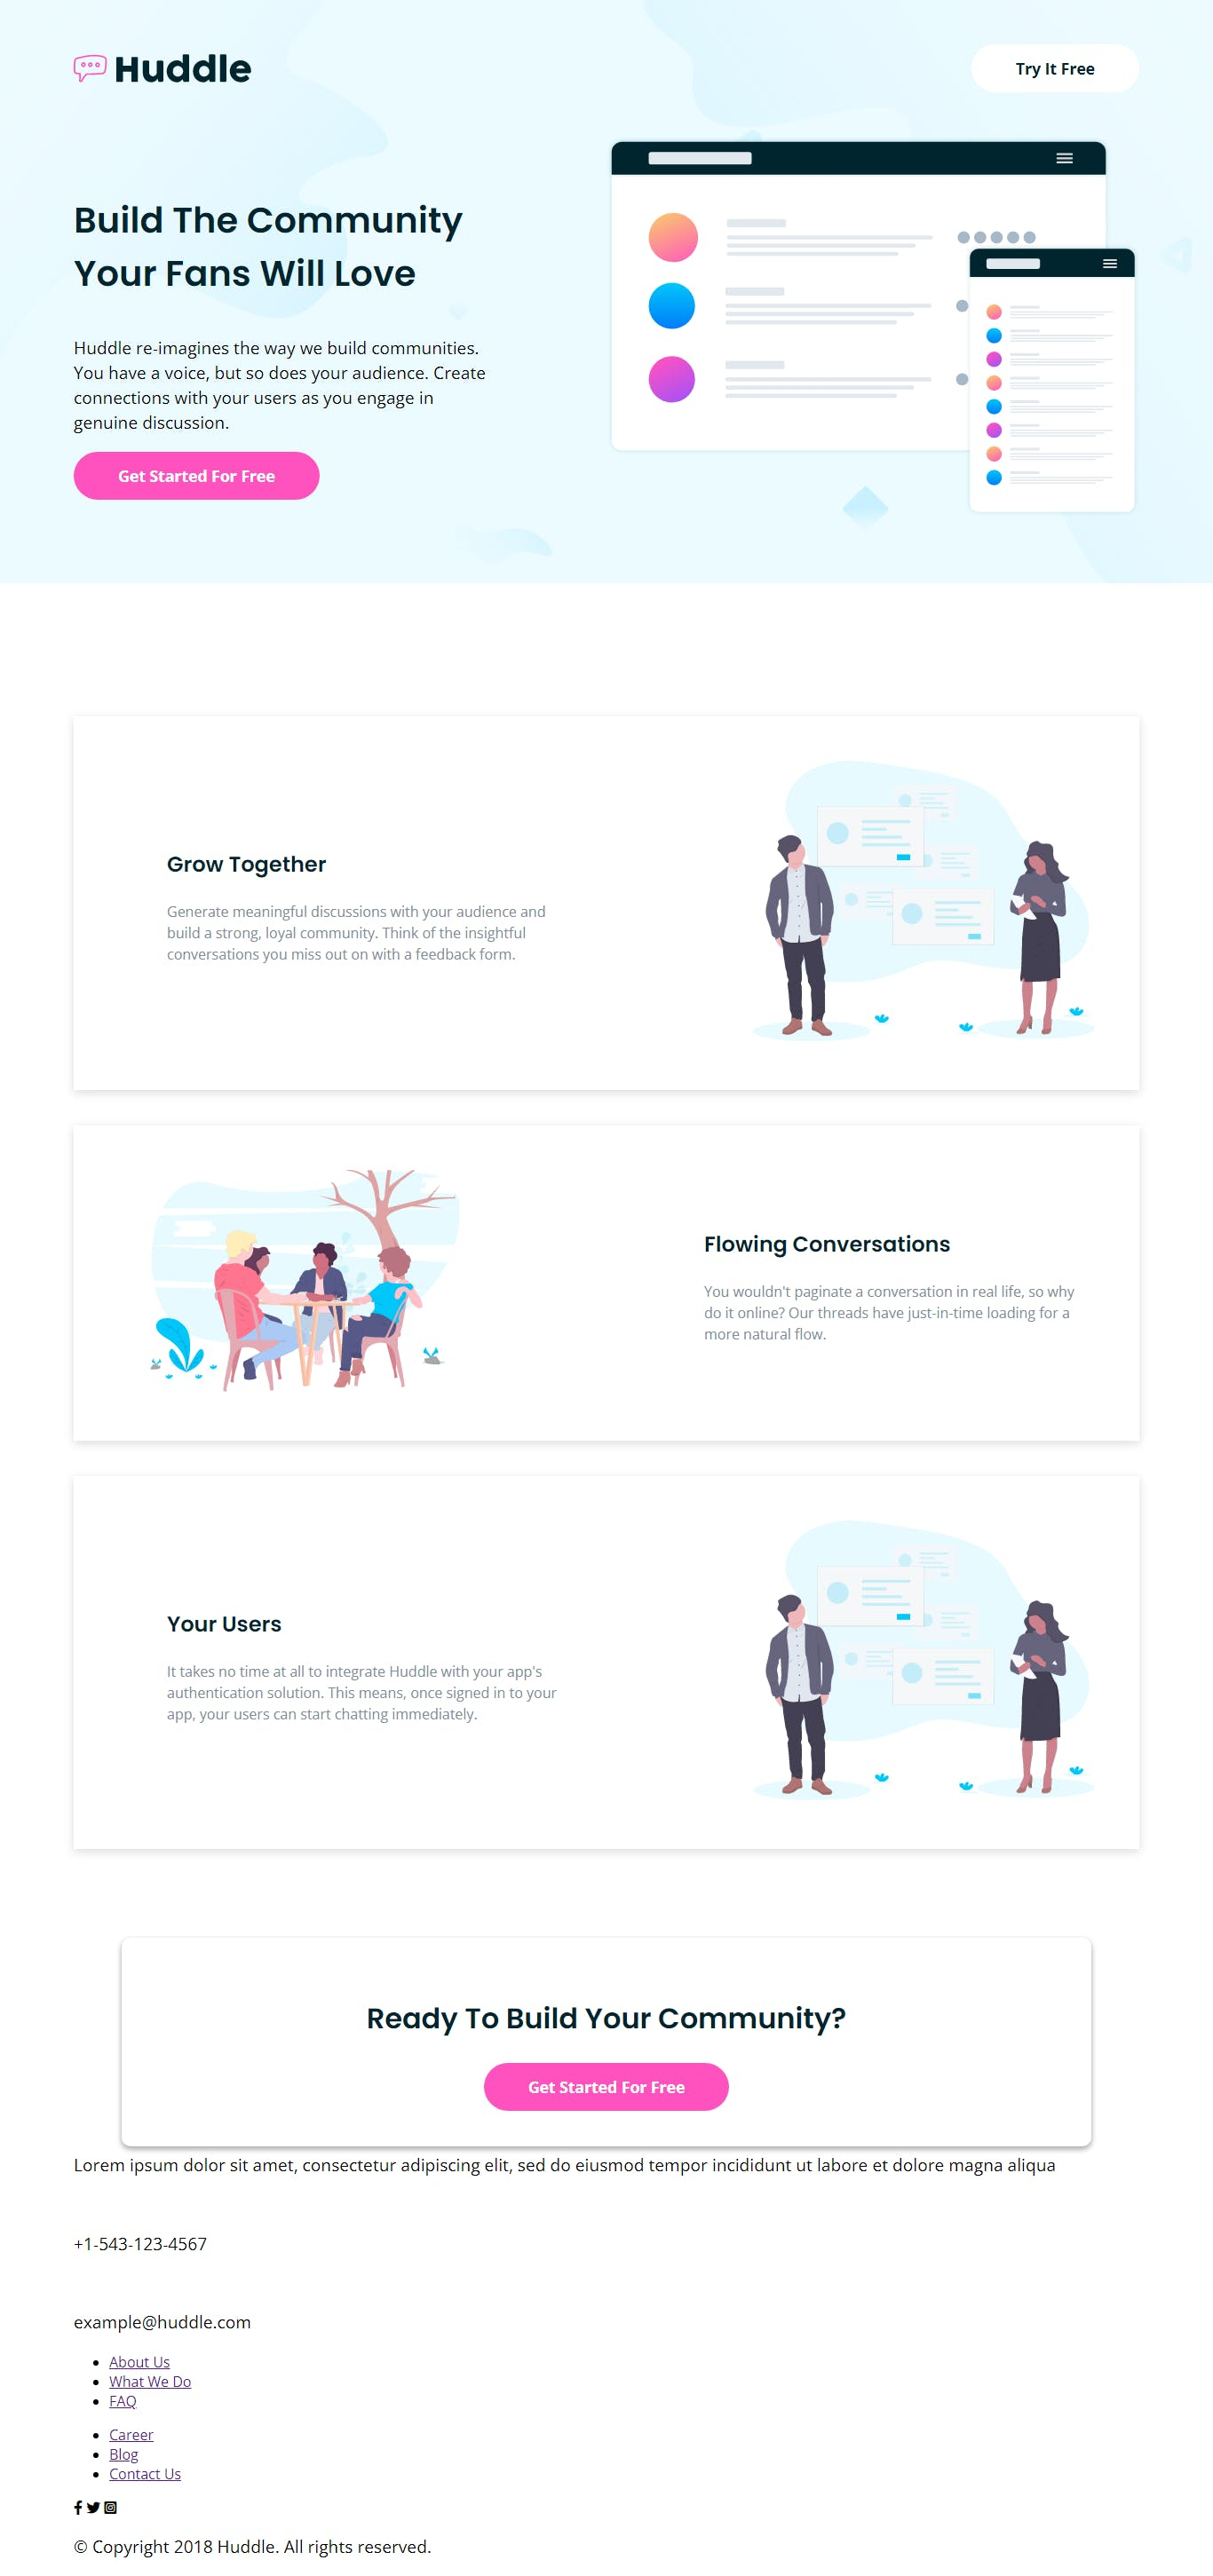 screencapture-127-0-0-1-5500-build-10-css-projects-huddle-landing-page-with-alternating-feature-blocks-master-index-html-2021-10-13-01_59_08.png